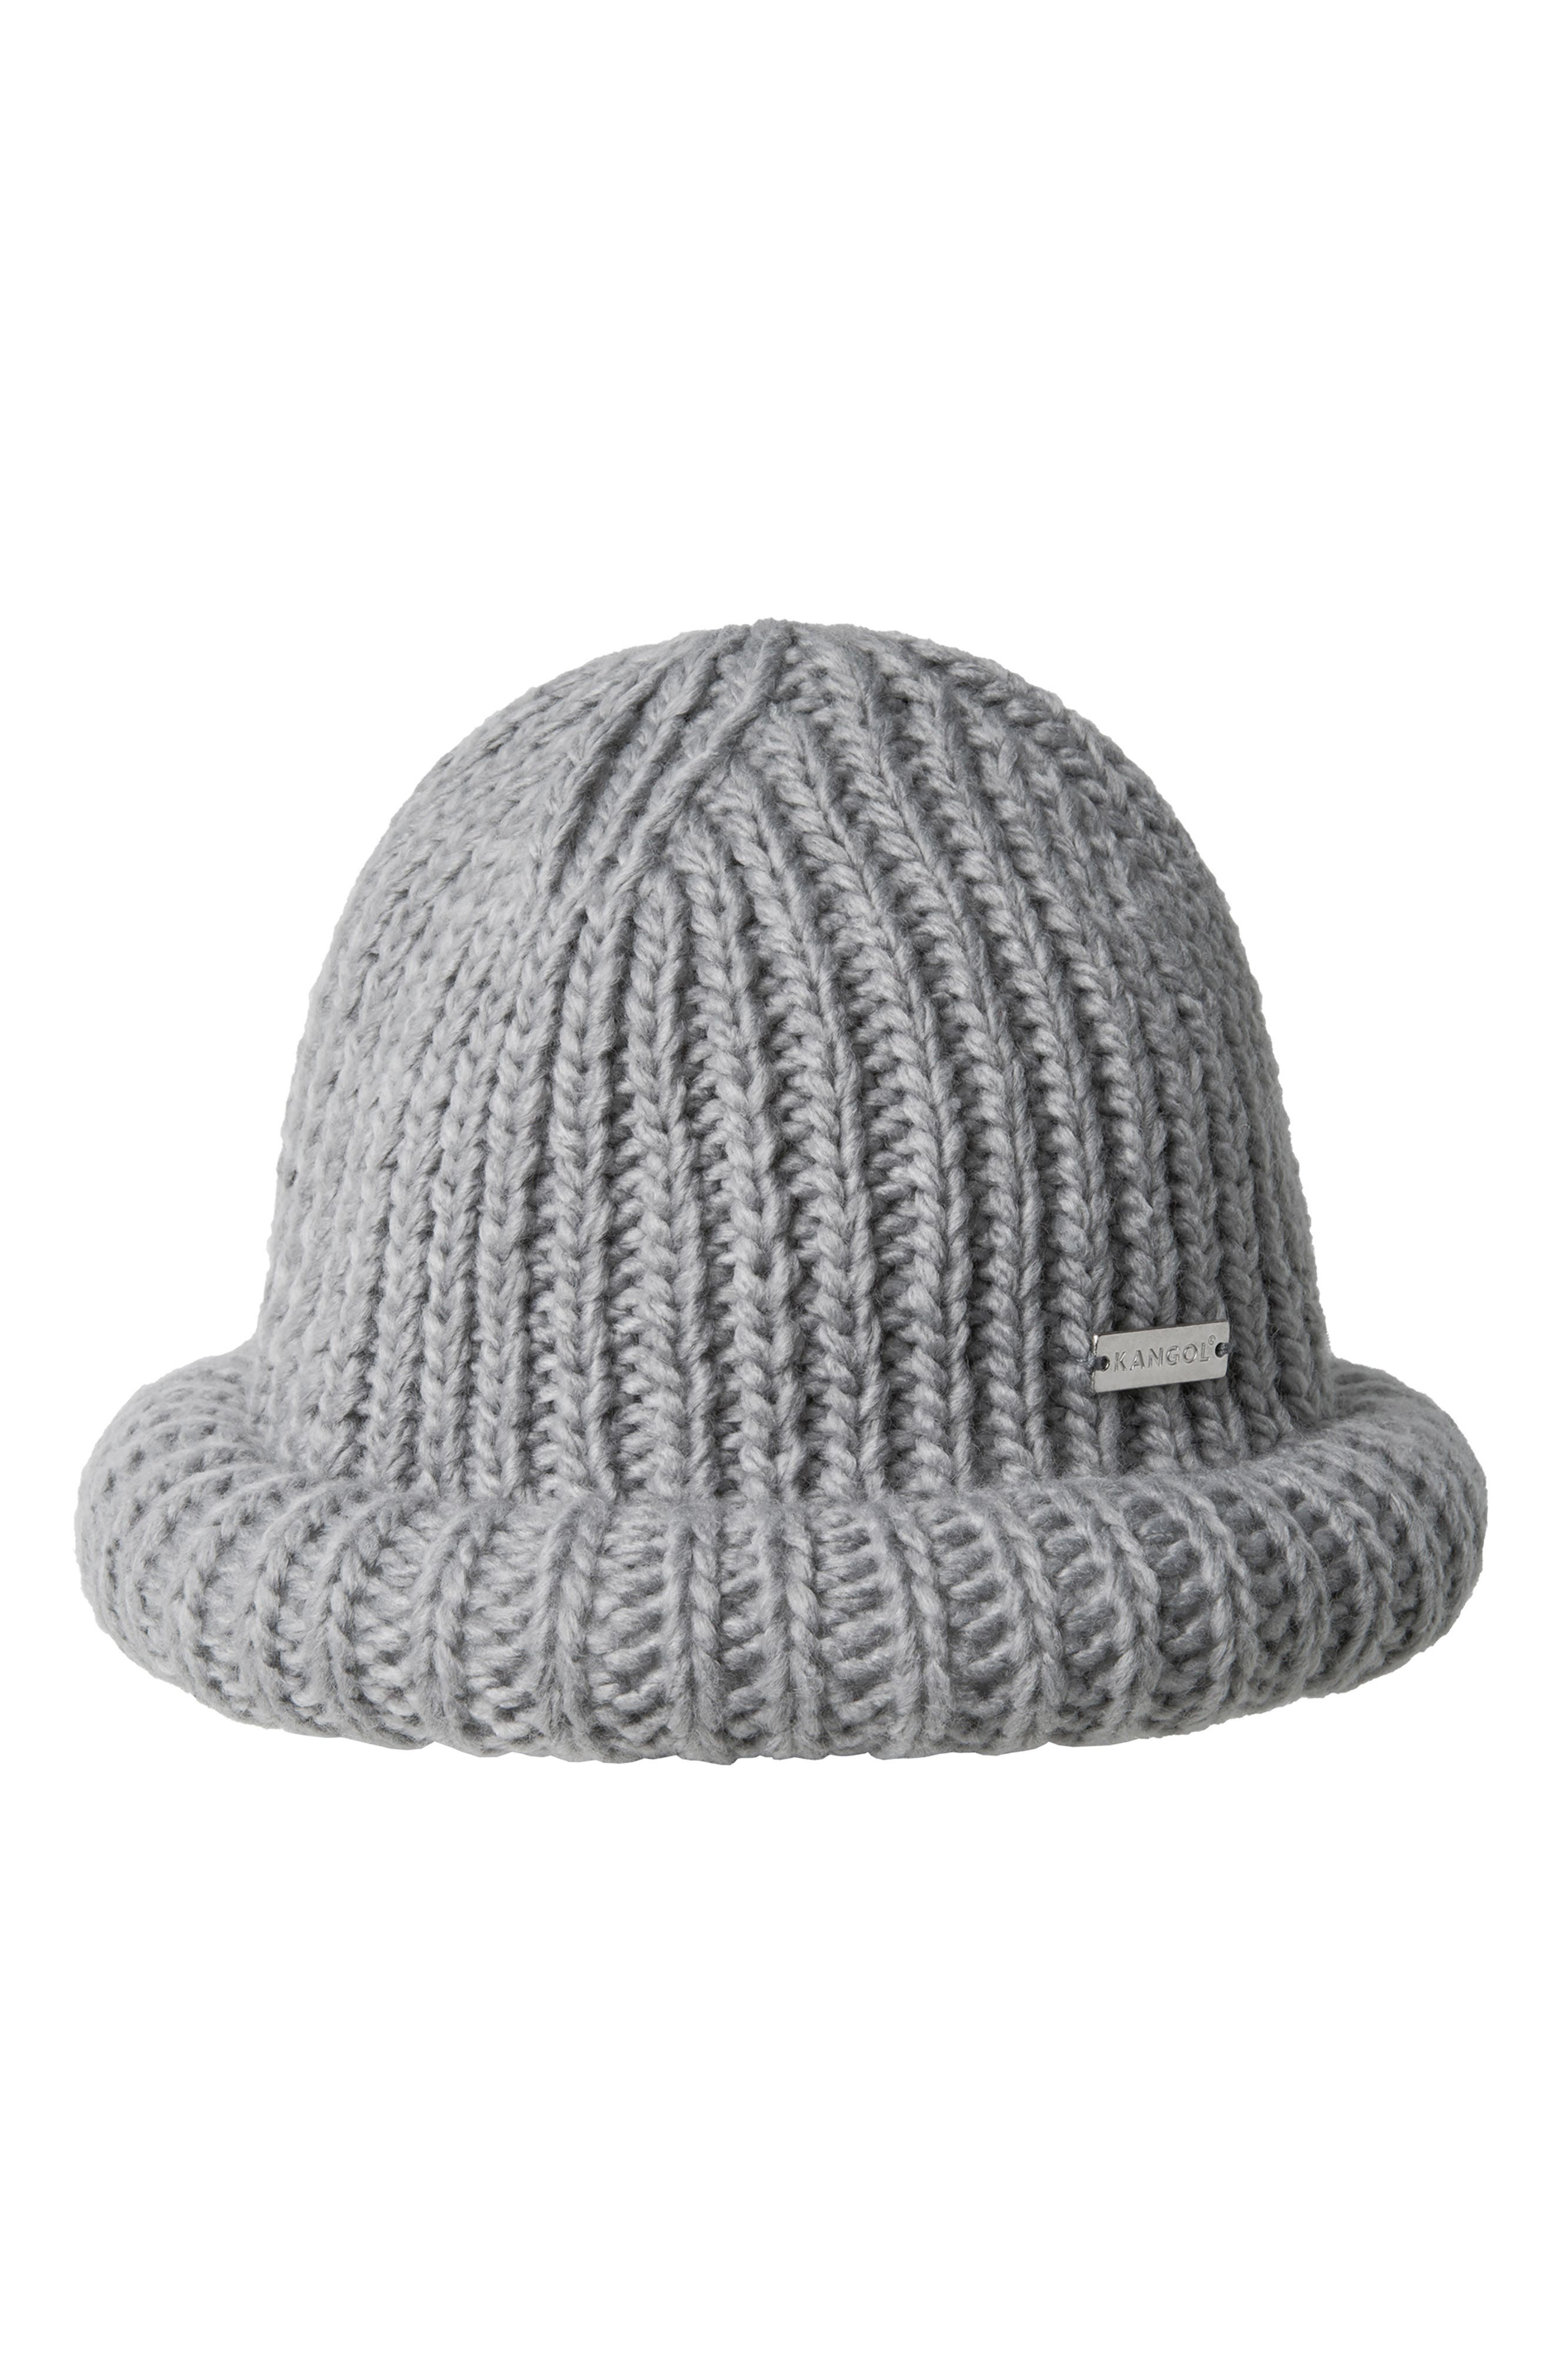 Rolled Beanie,                             Main thumbnail 1, color,                             GREY